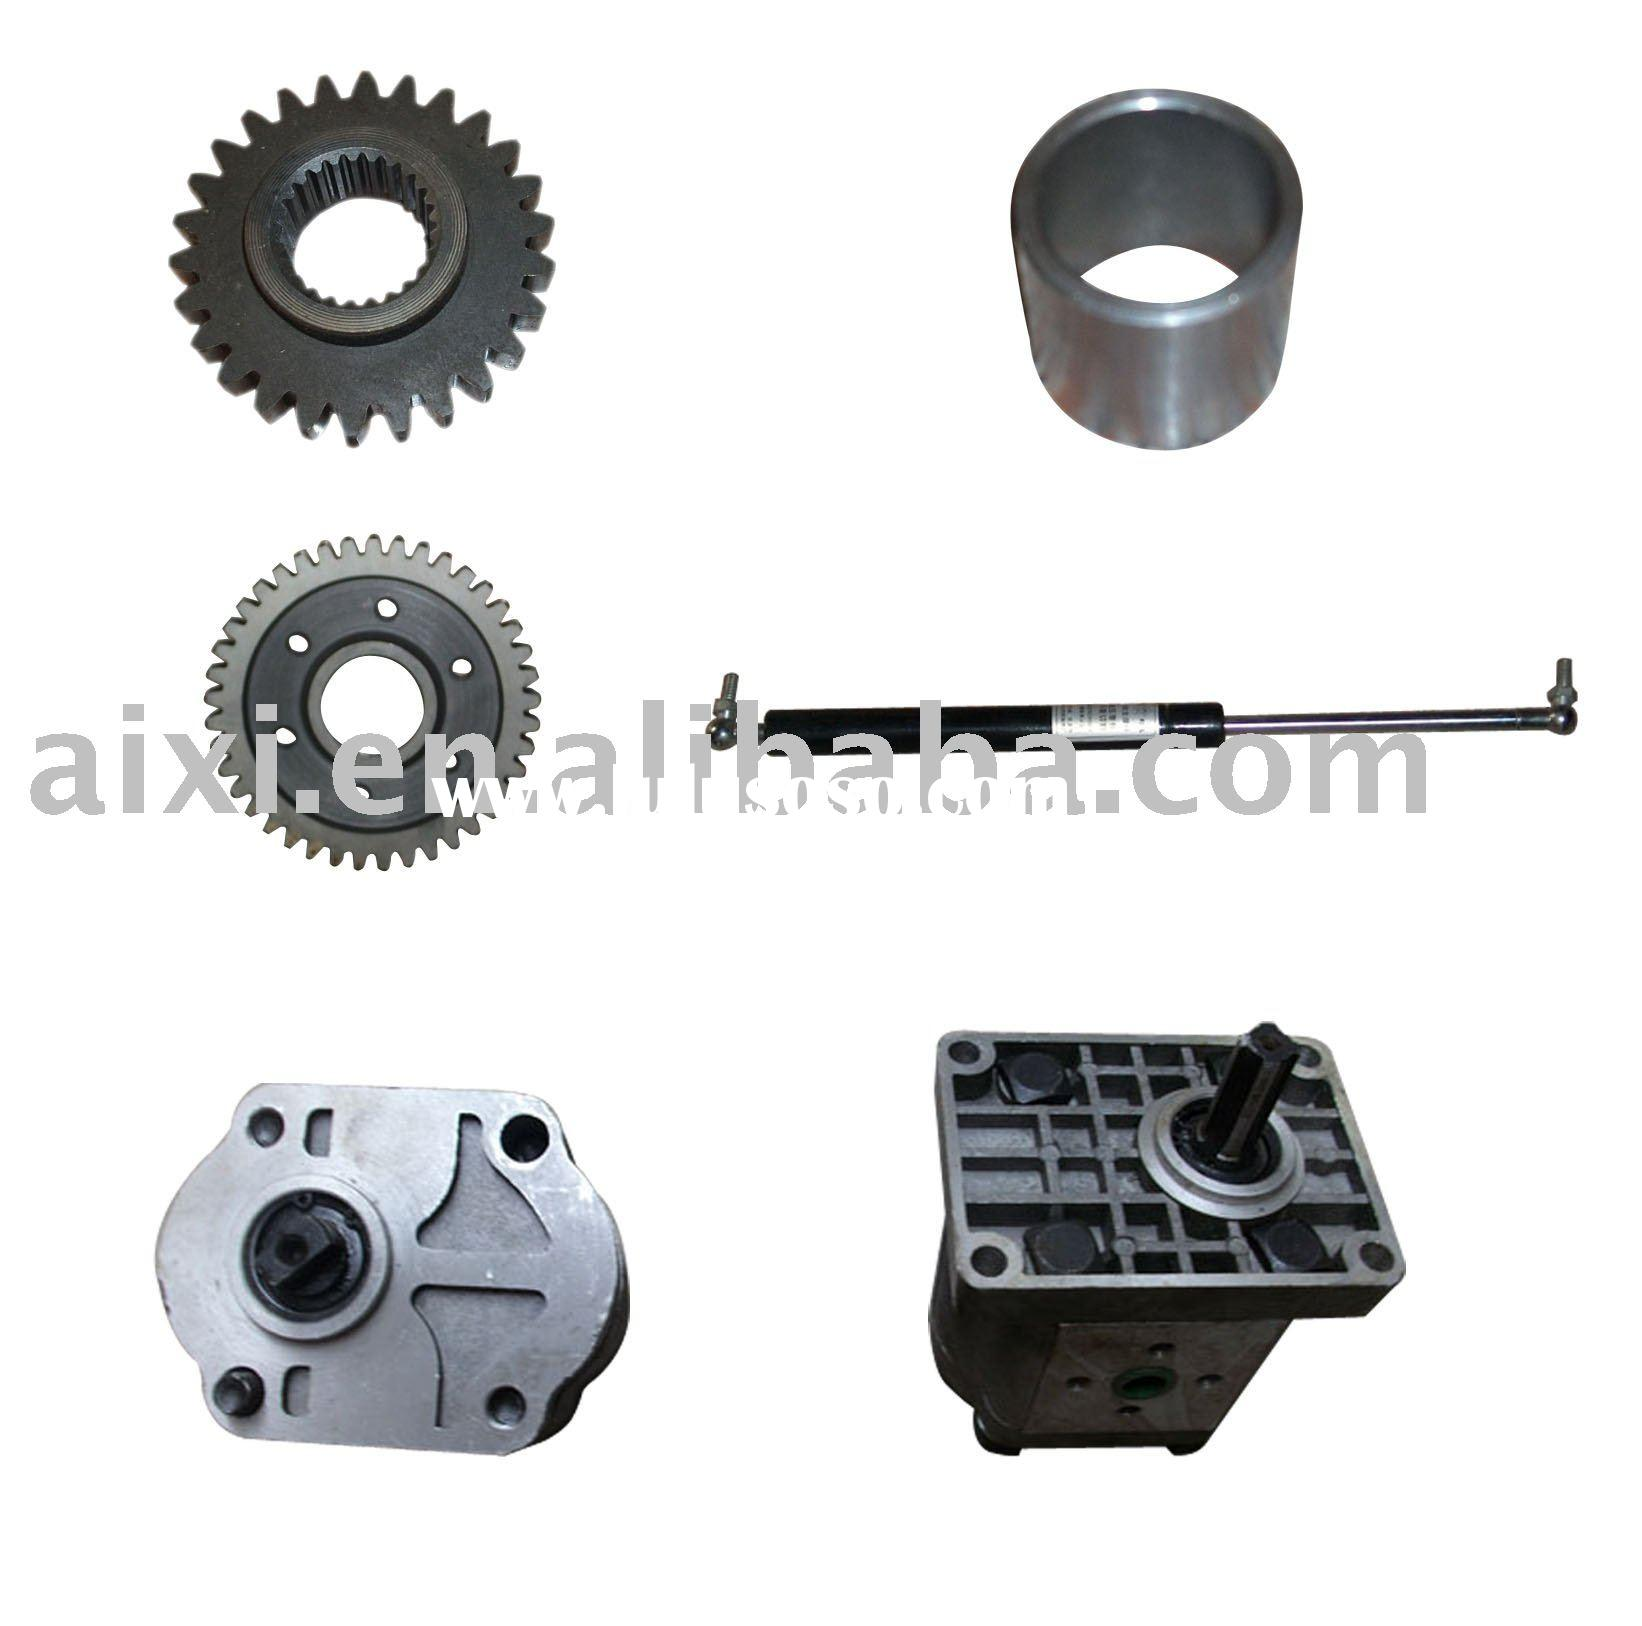 Jinma Tractor Parts : Tractor jinma manufacturers in lulusoso